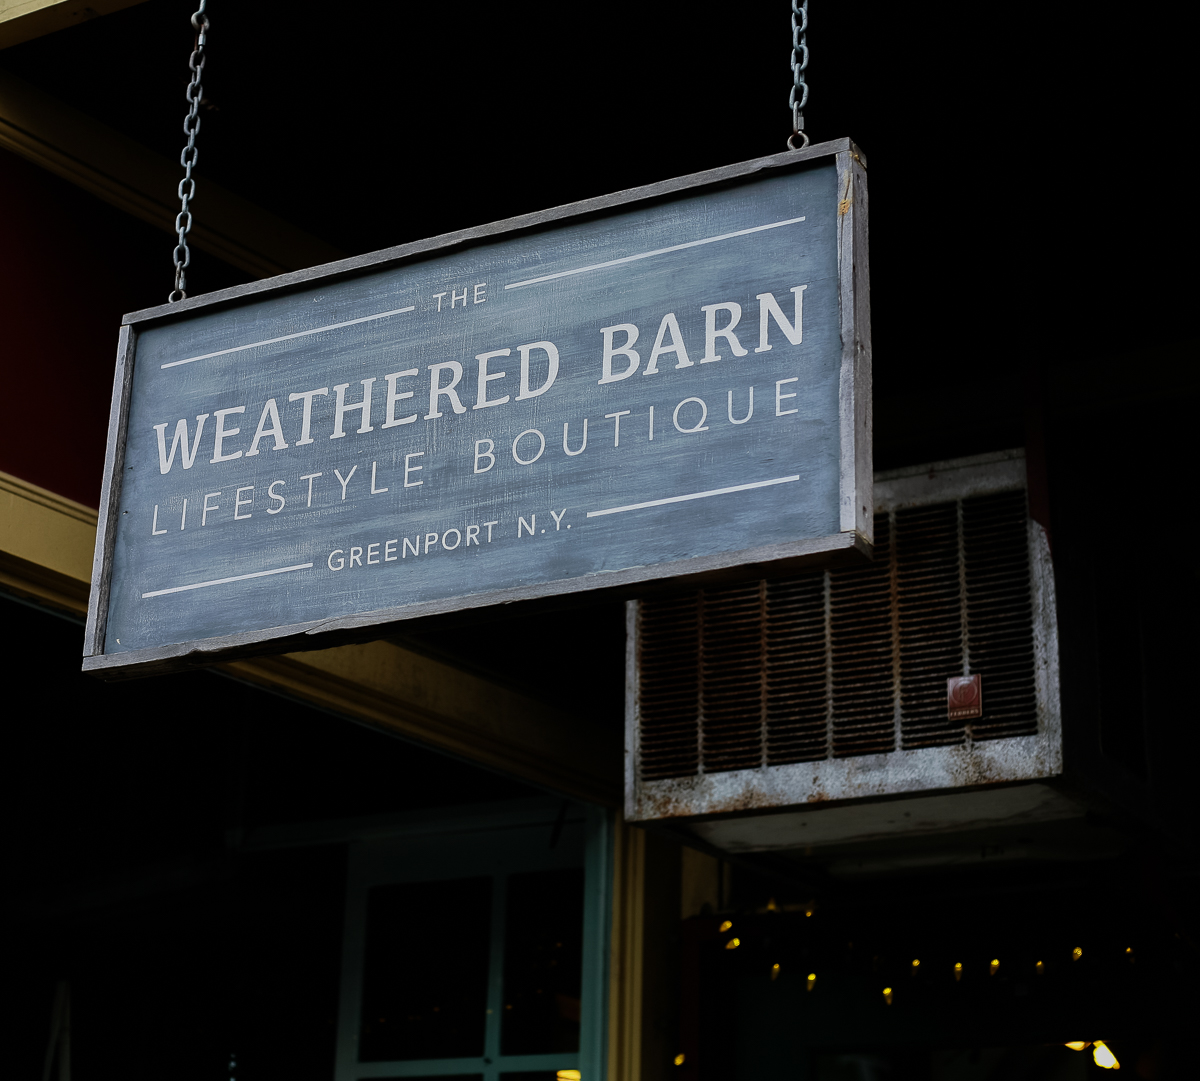 The Weathered Barn